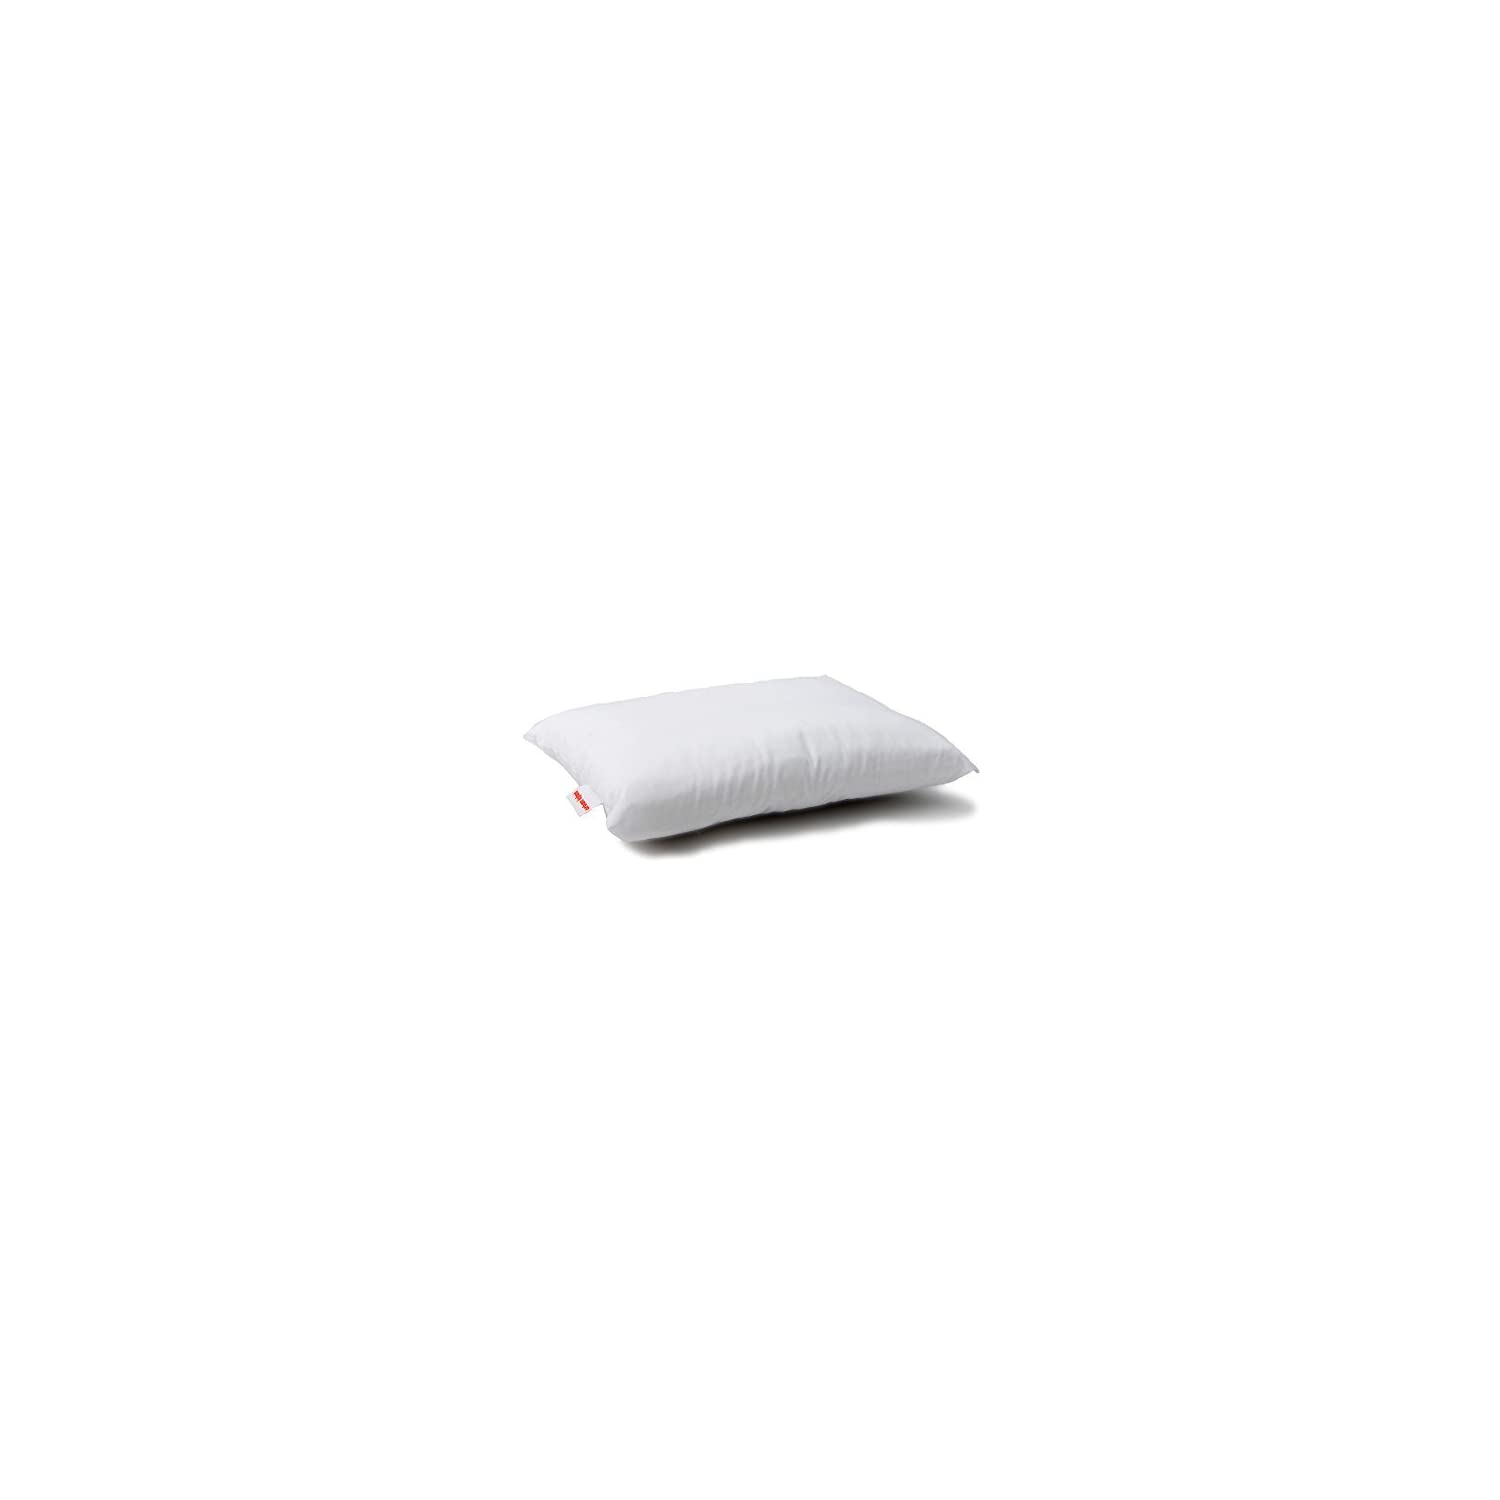 Urban Infant Pipsqueak Small | Tiny | Mini Pillow – Washable and Hypoallergenic